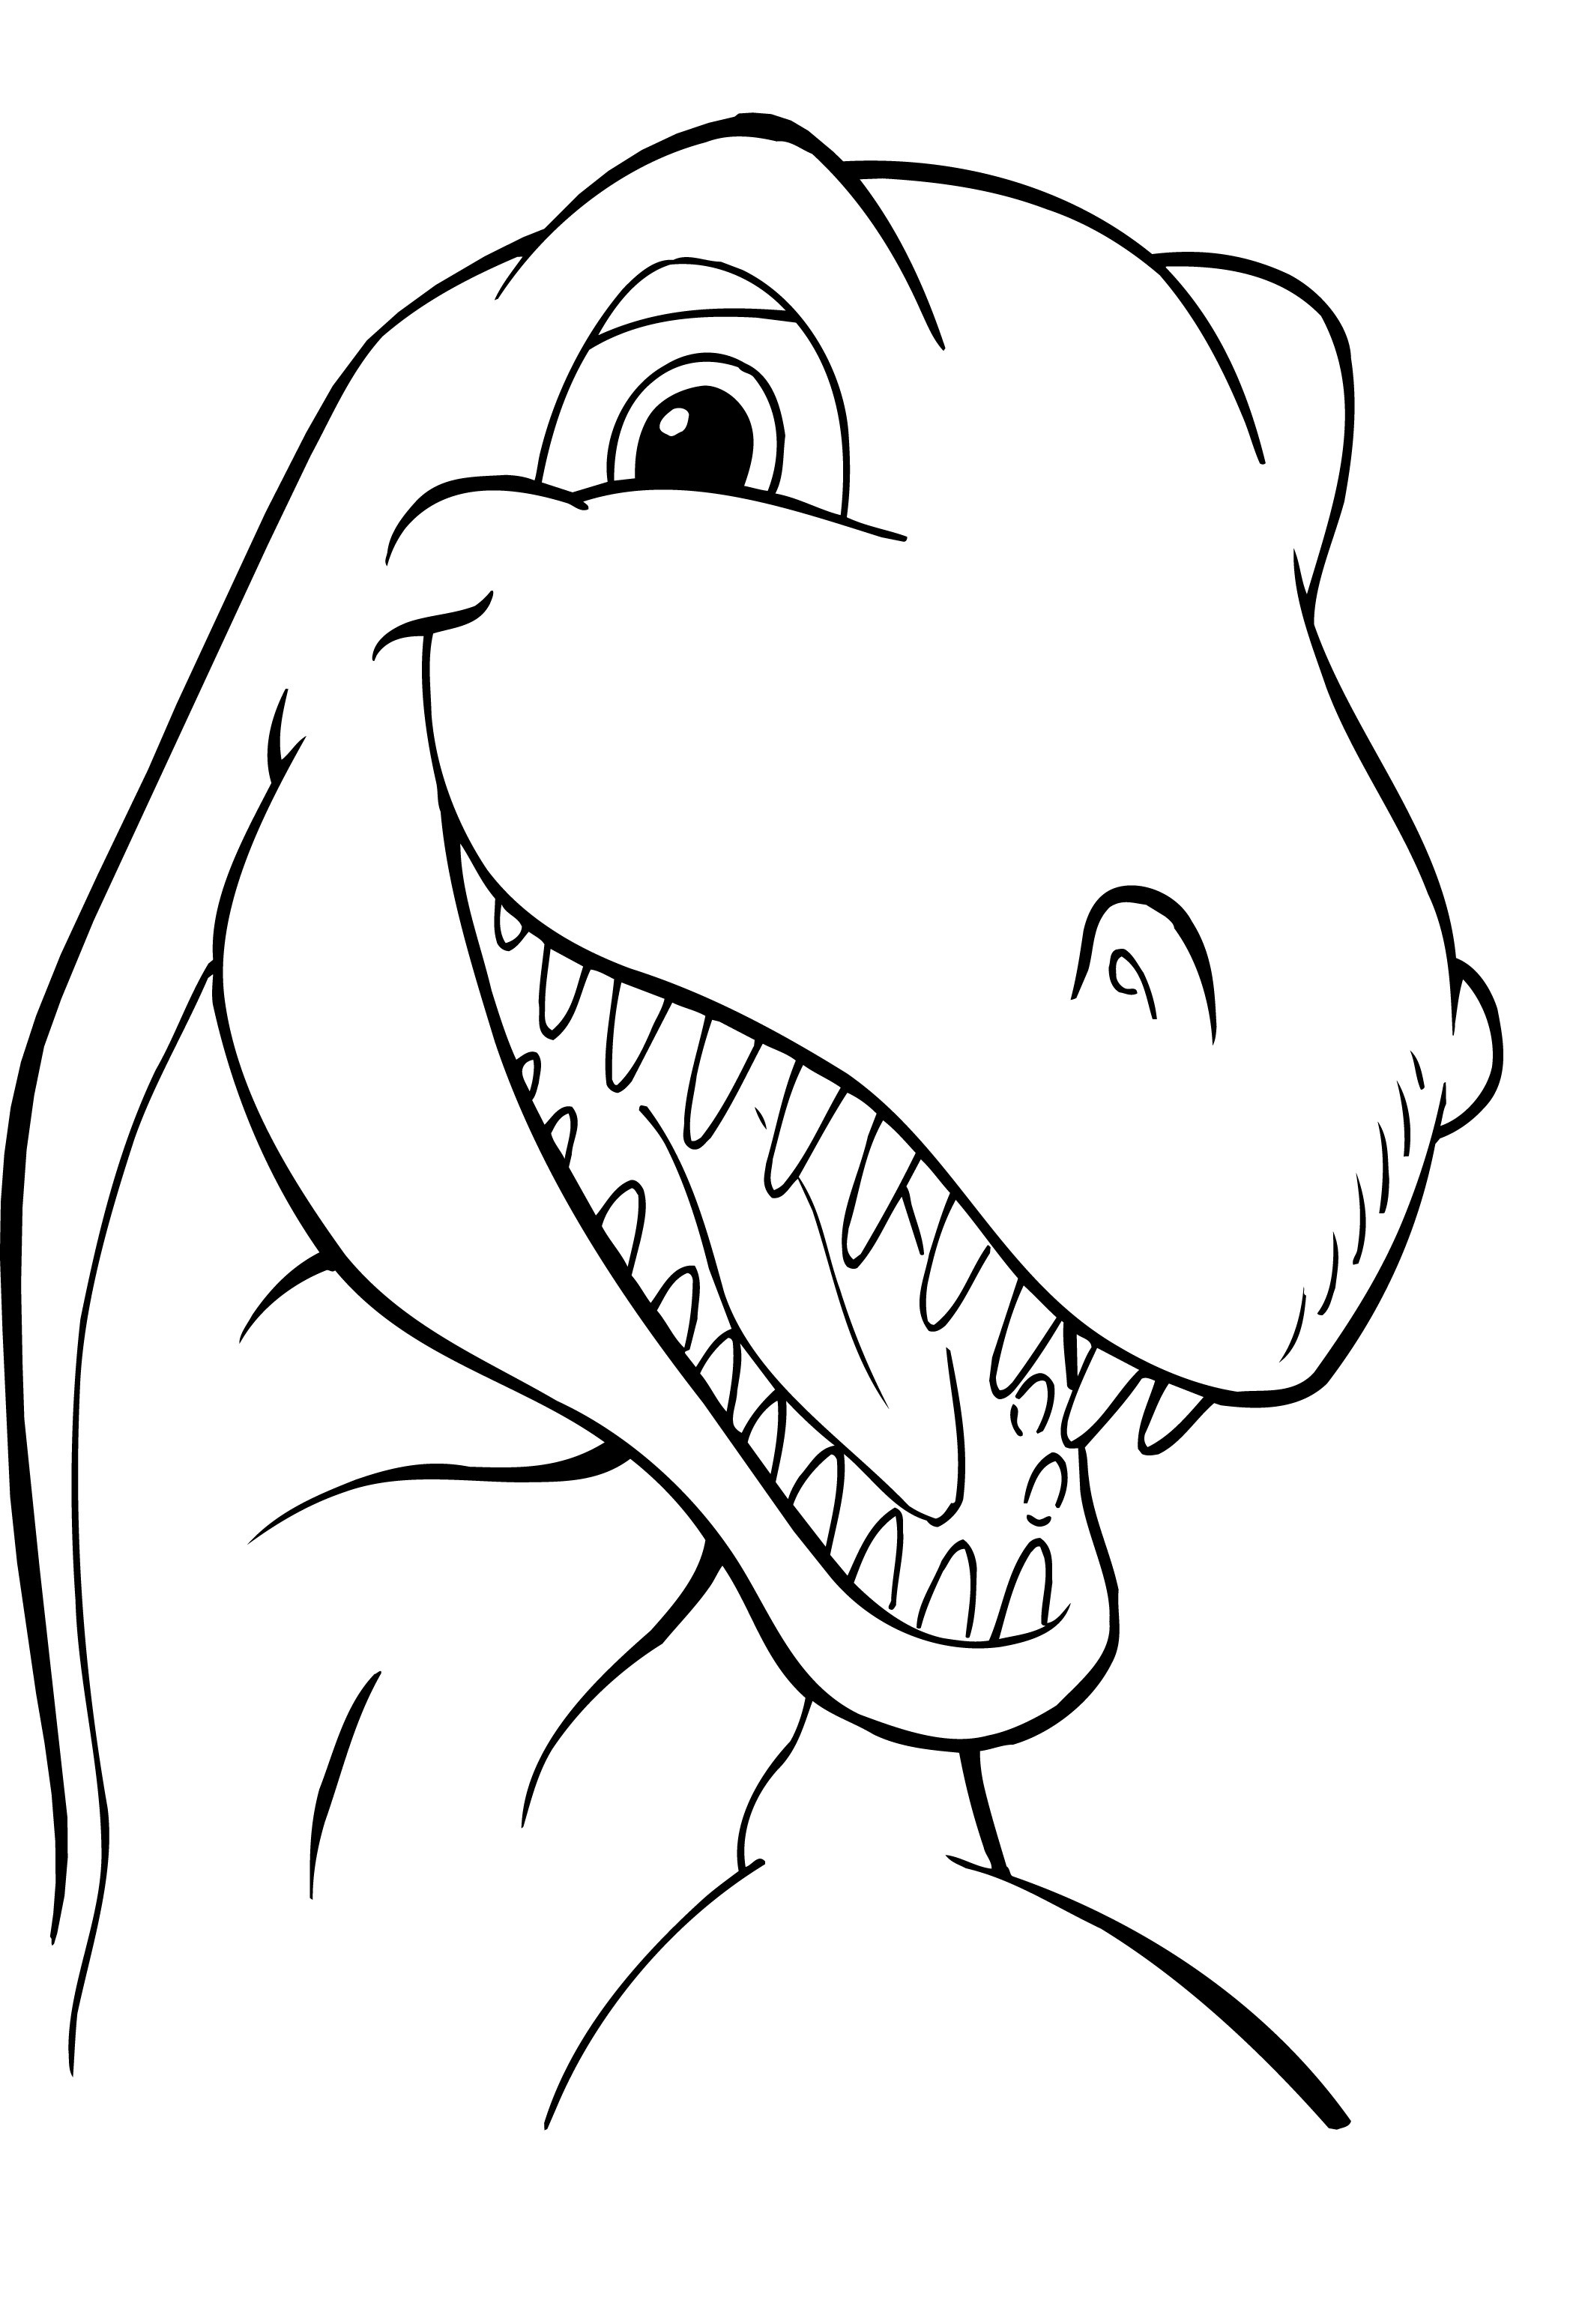 coloring dinosaur printables coloring pages dinosaur free printable coloring pages printables dinosaur coloring